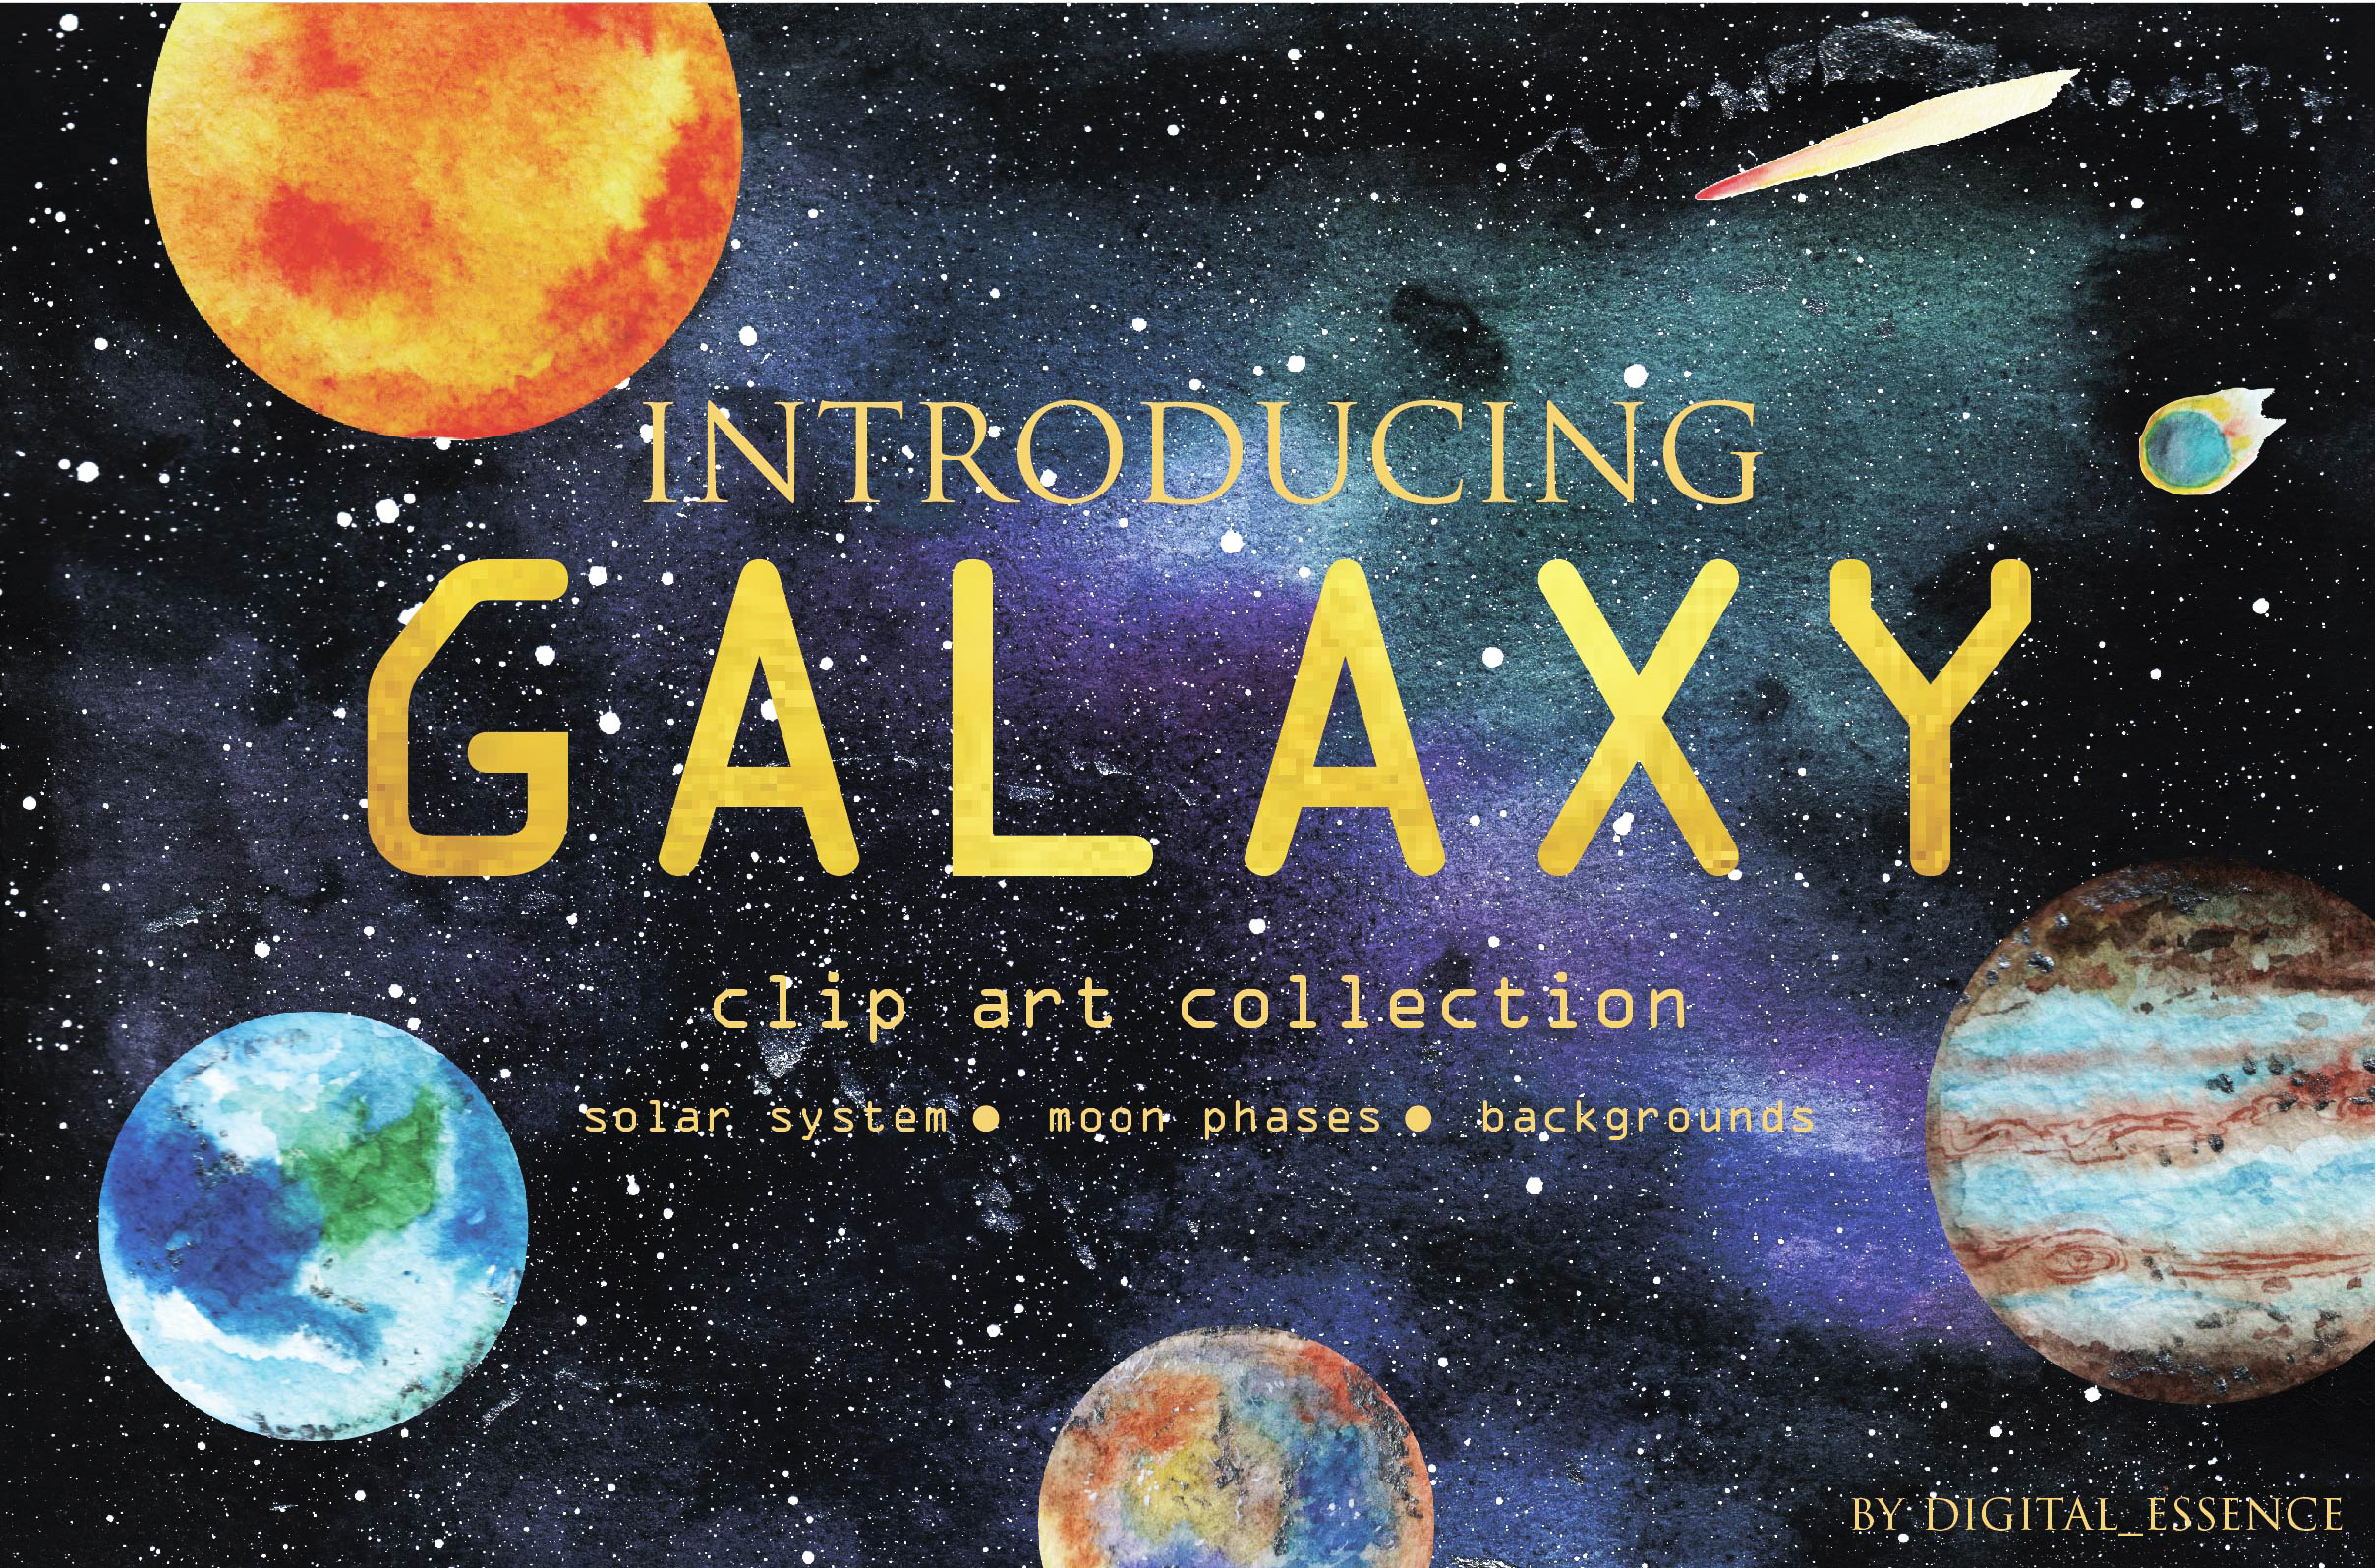 Galaxy clip art collection example image 1